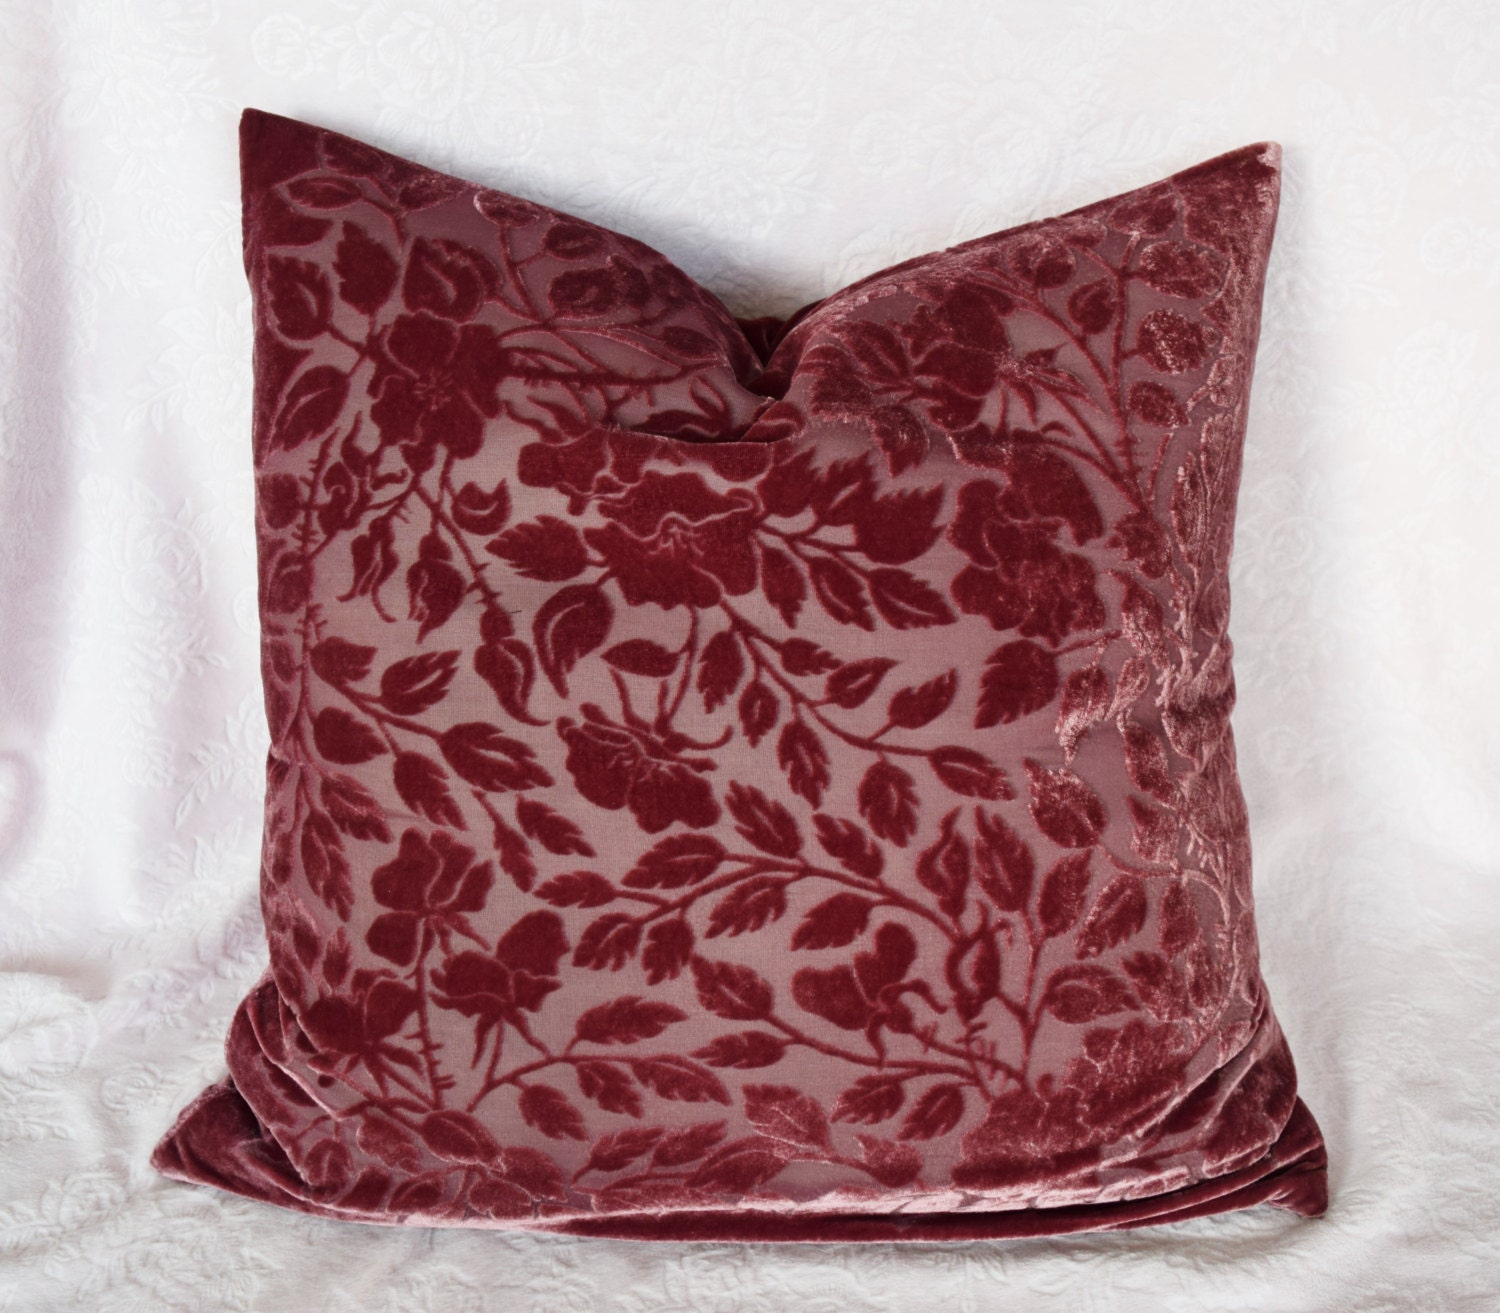 Throw Pillows For Burgundy Couch : VELVET THROW PILLOW Burgundy Wine Rose Burnt Out Burned Fabric